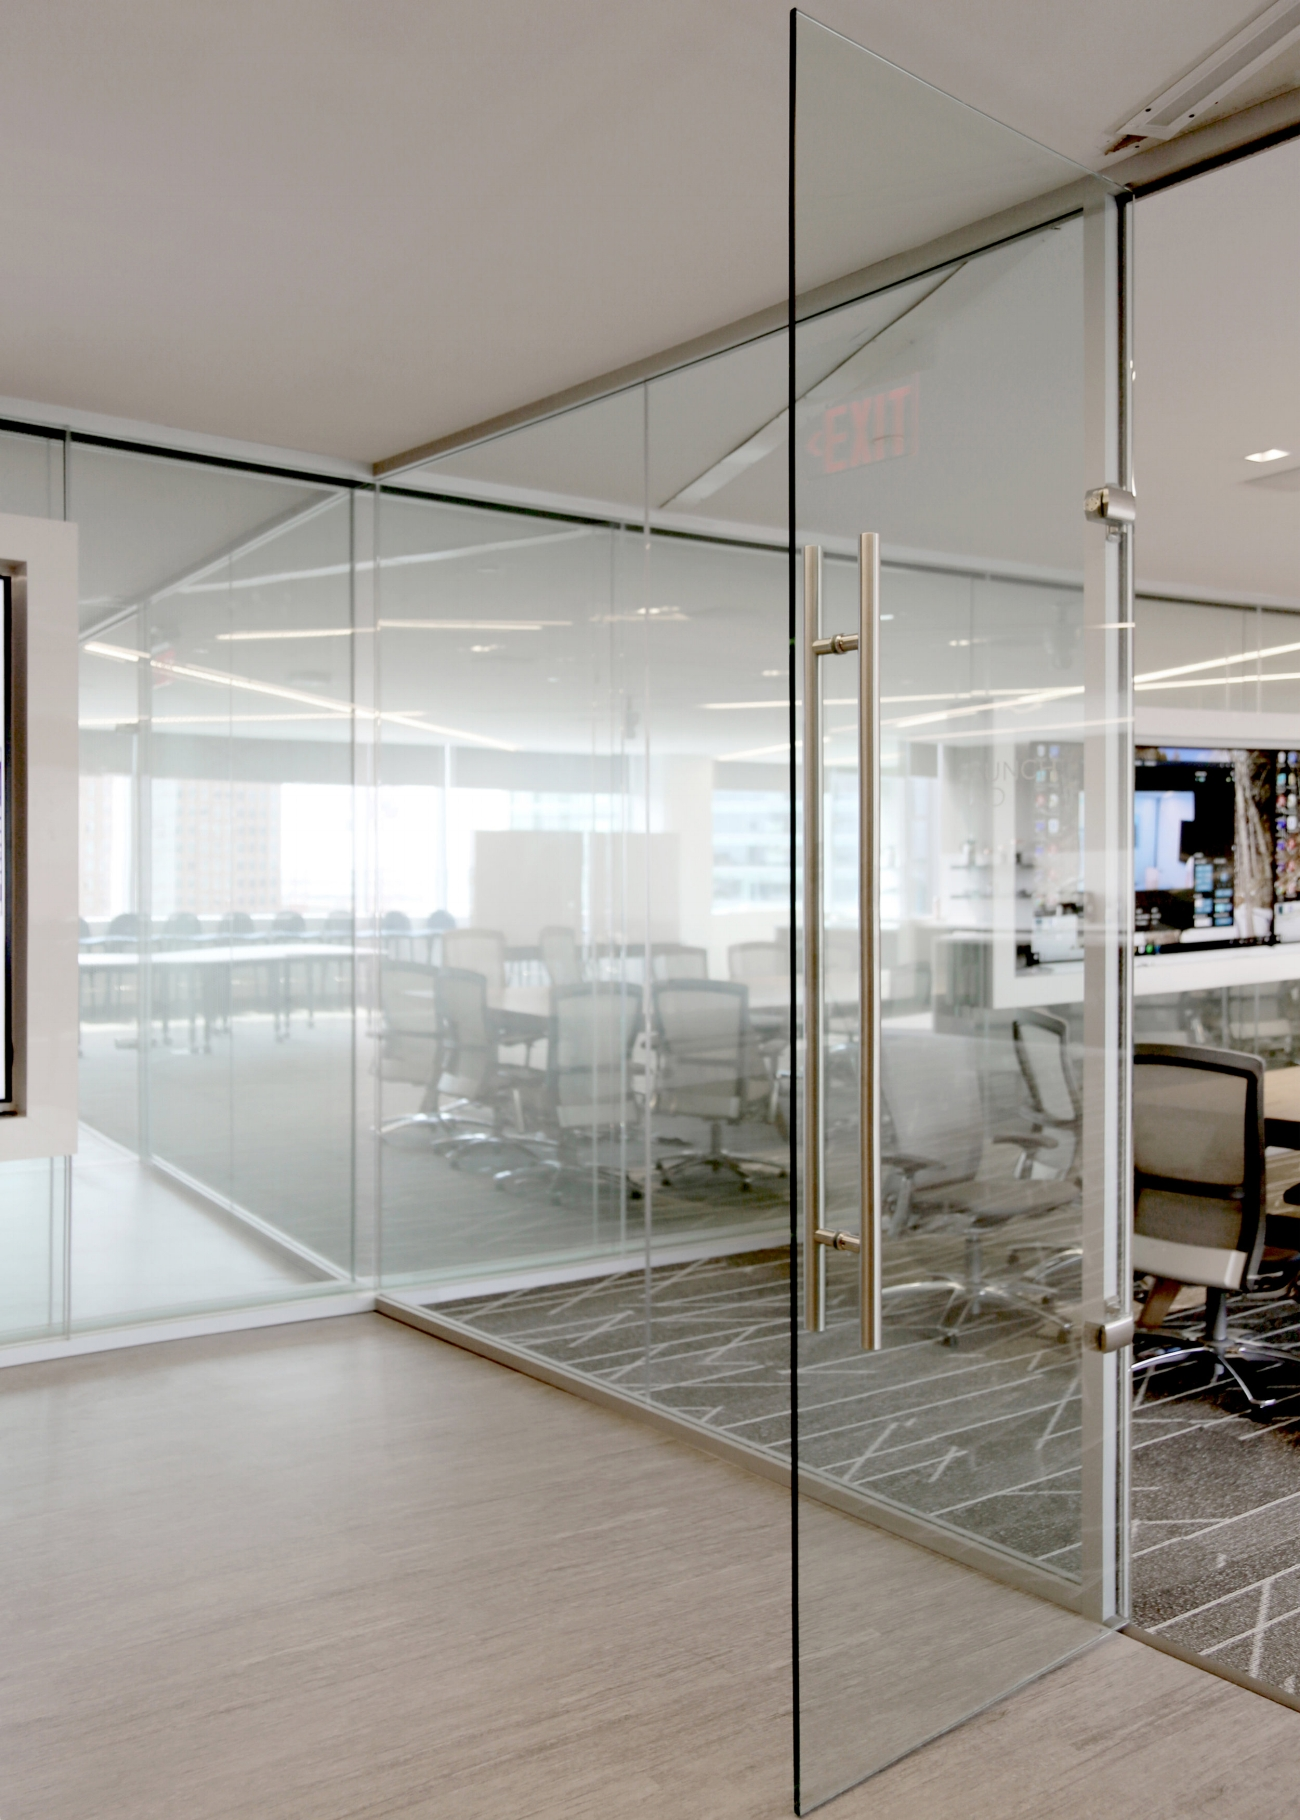 03 Litespace Demountable System Specialty Glass Etched Mirror - Spaceworks AI.jpg